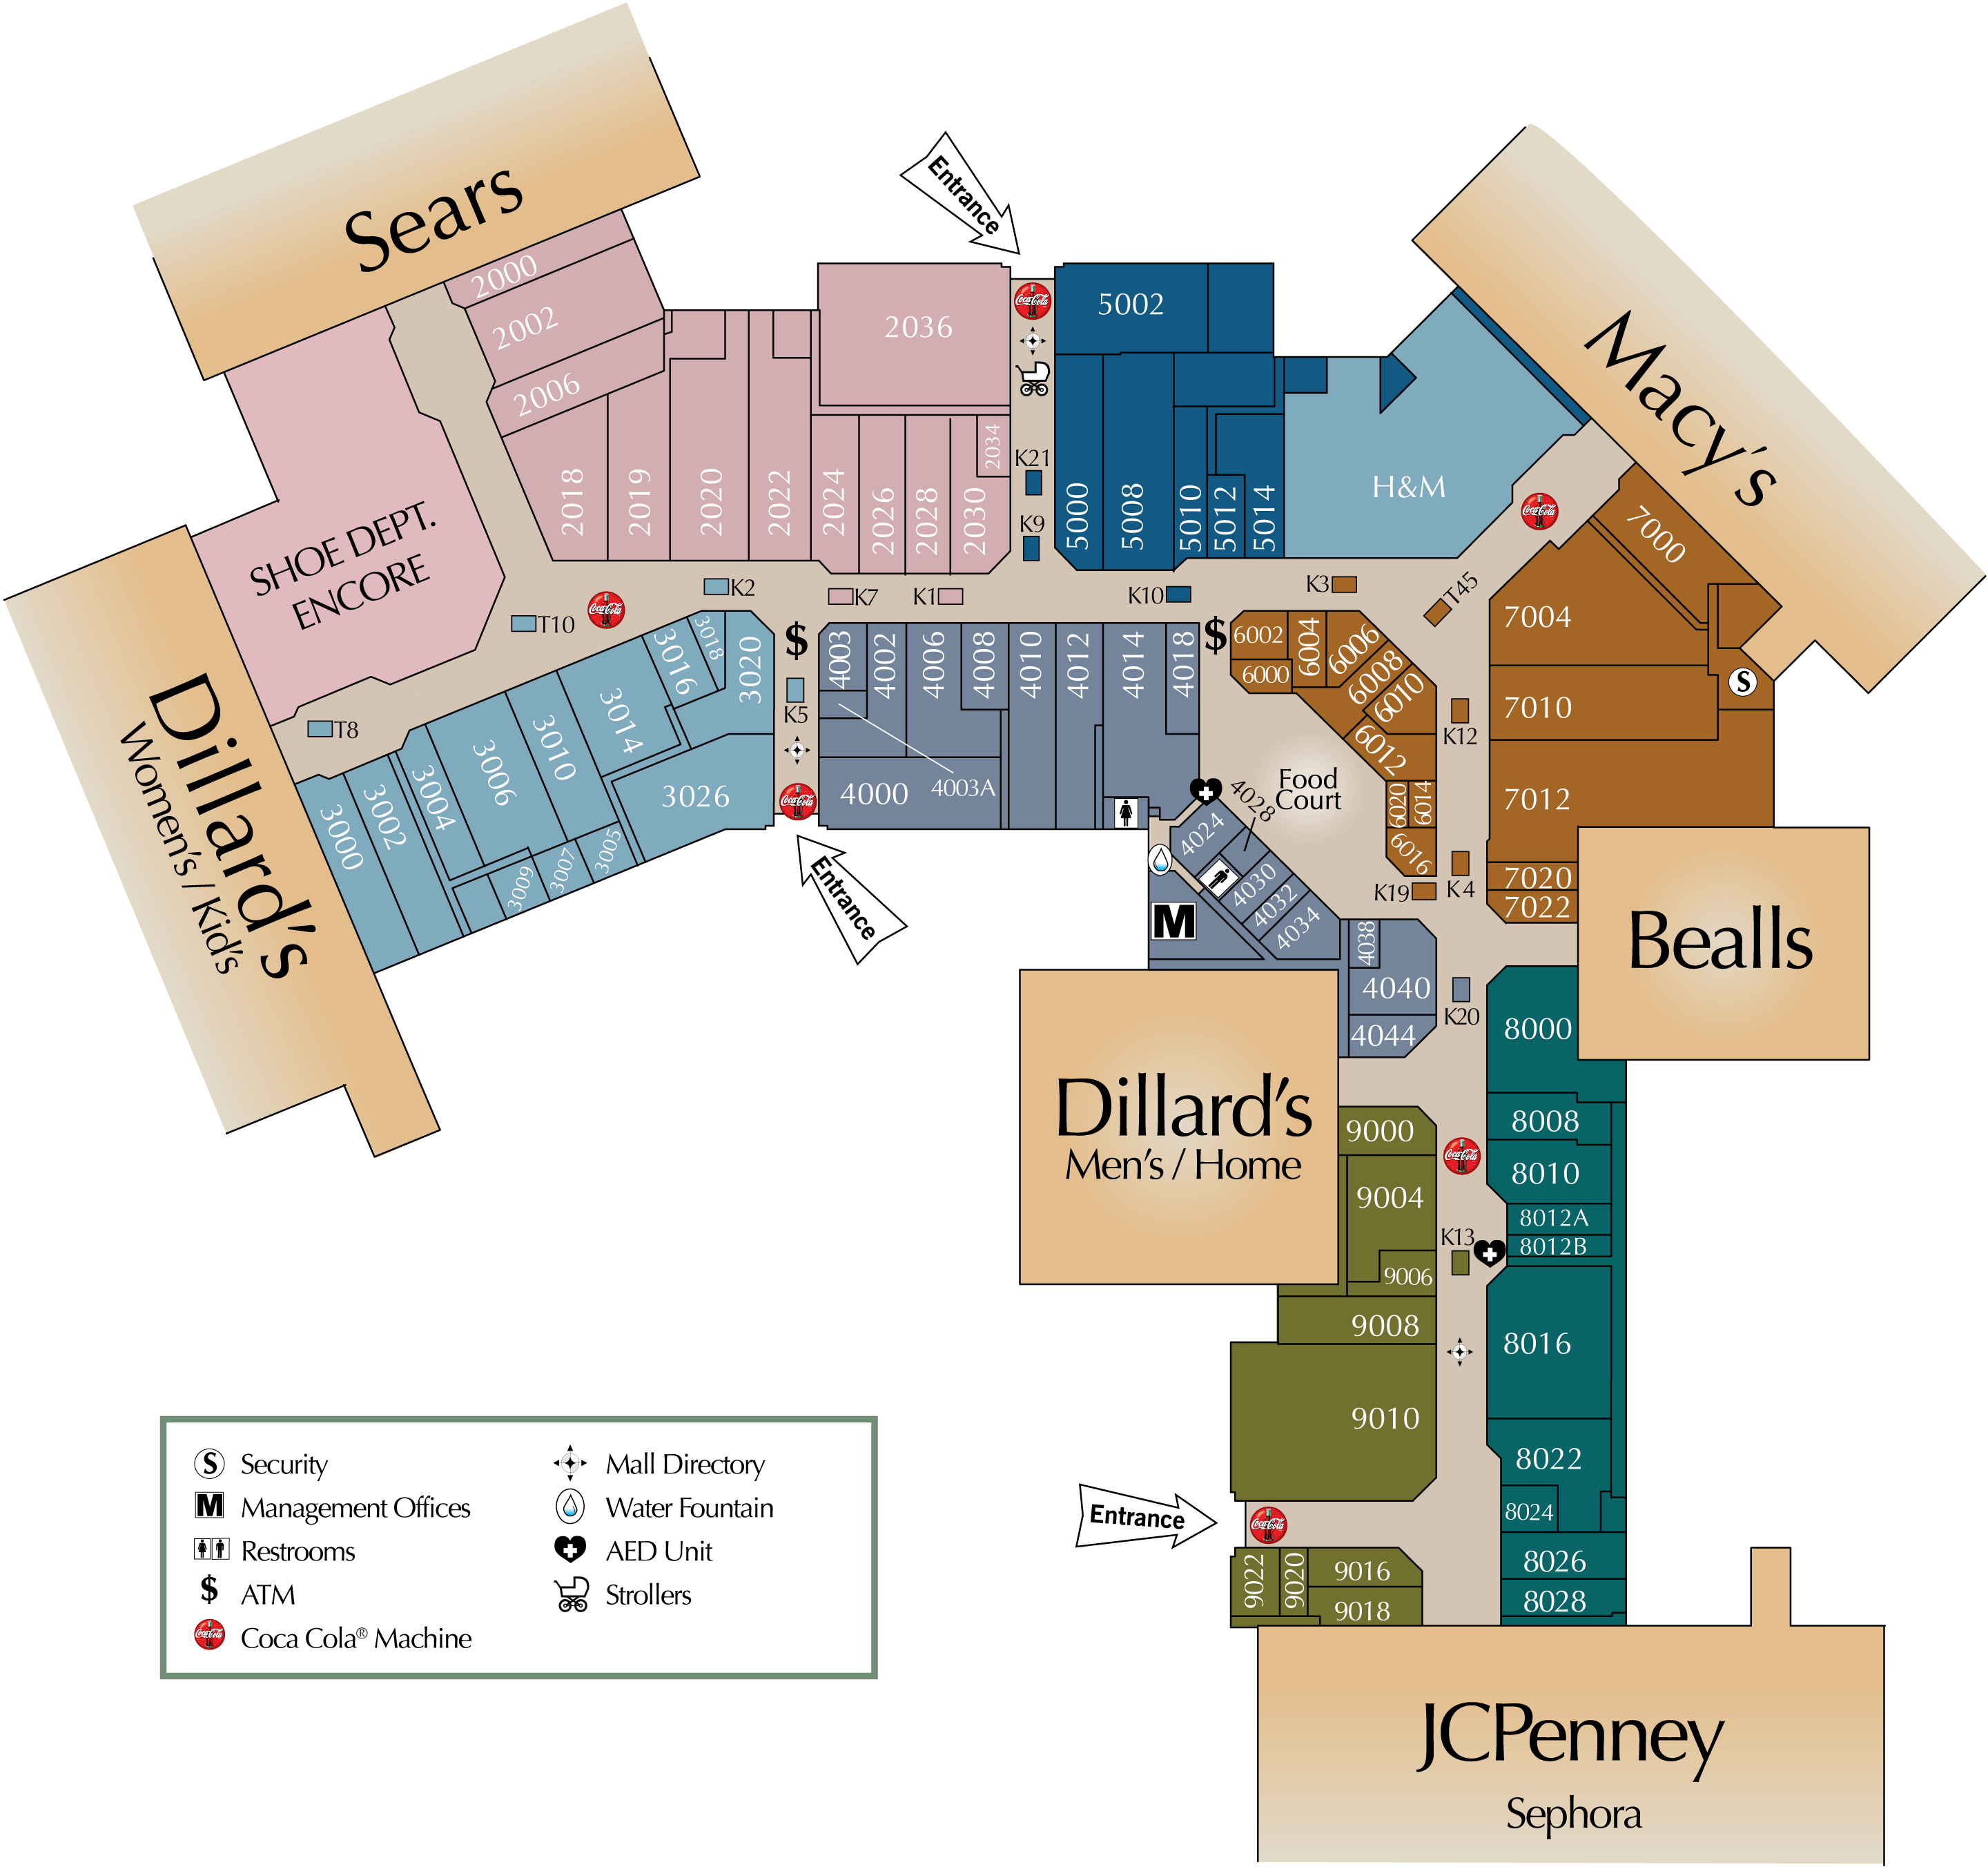 Mall directory post oak mall for Fashion valley jewelry stores